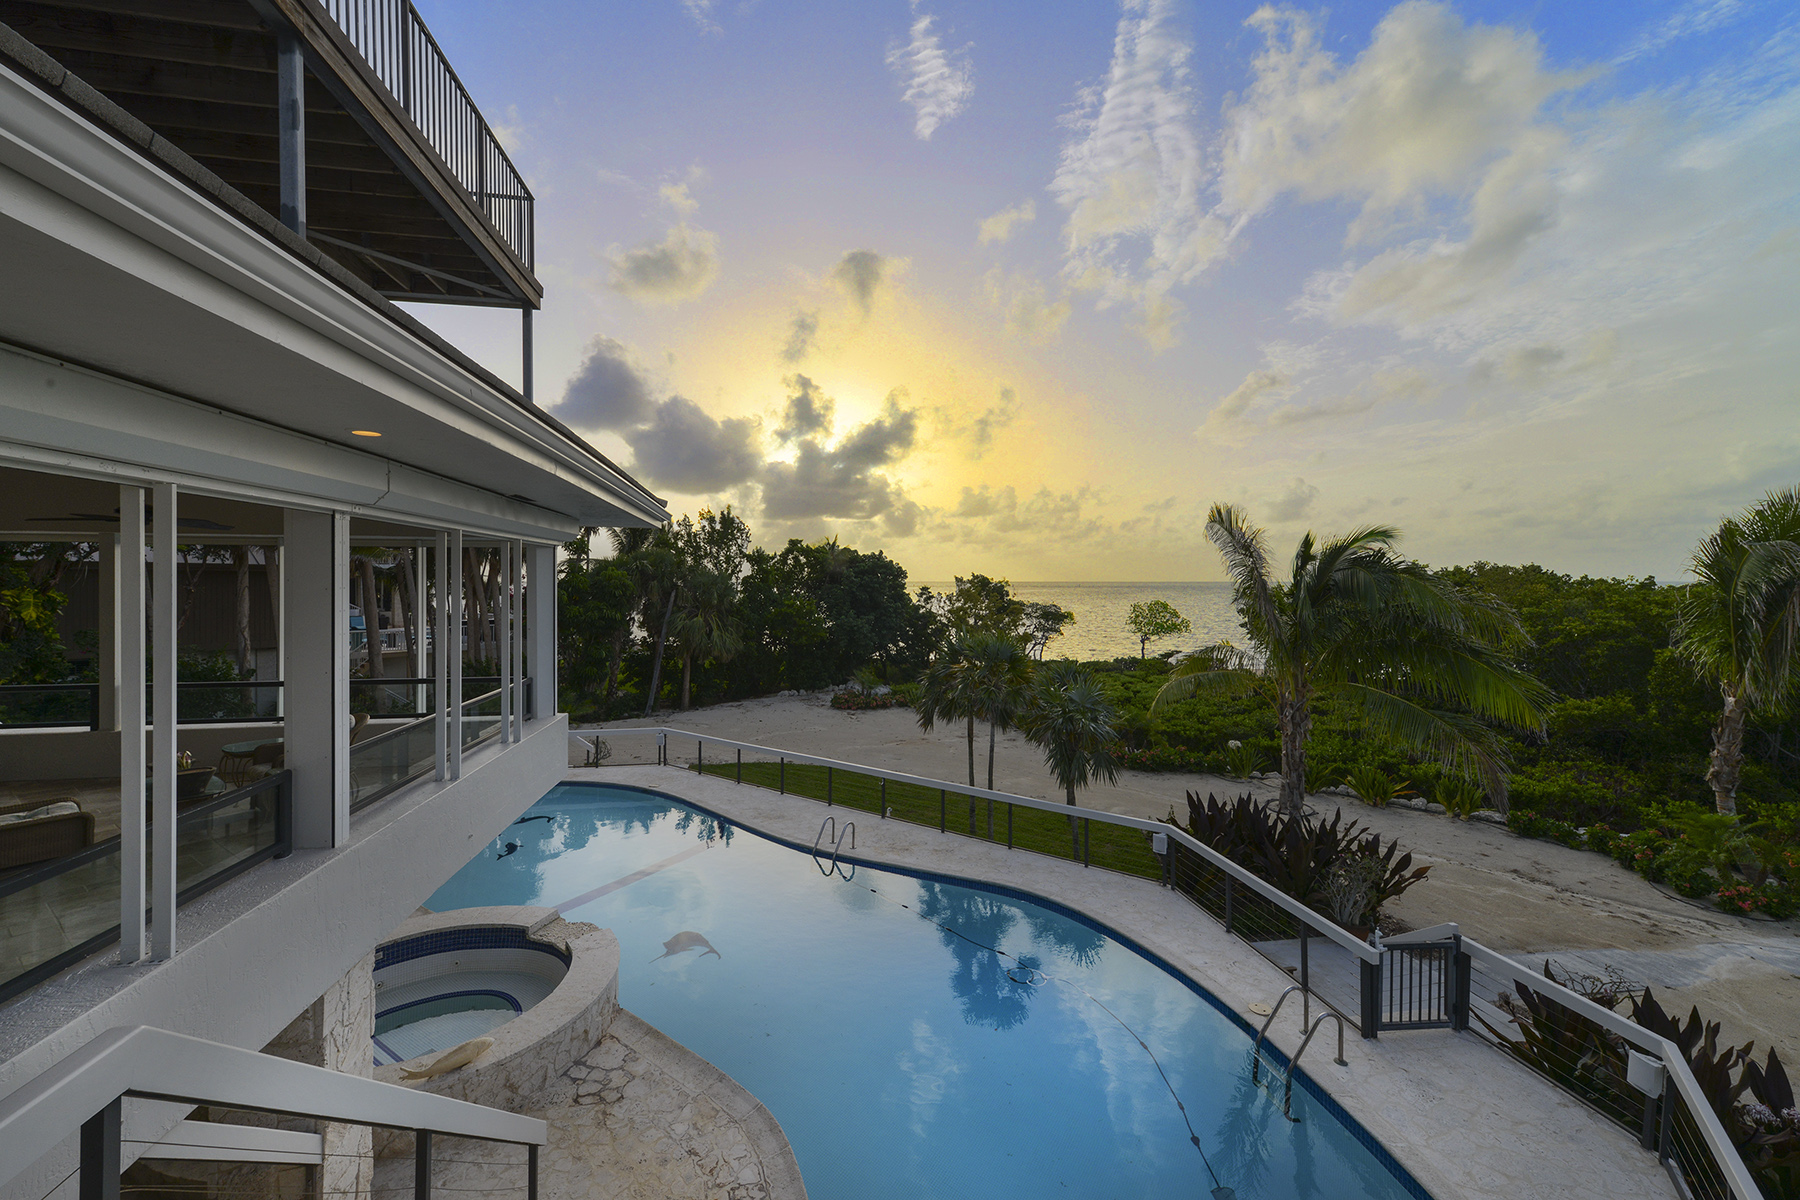 Single Family Home for Sale at Truly Unique Oceanfront Home at Ocean Reef Club 19 Sunrise Cay Drive Key Largo, Florida 33037 United States